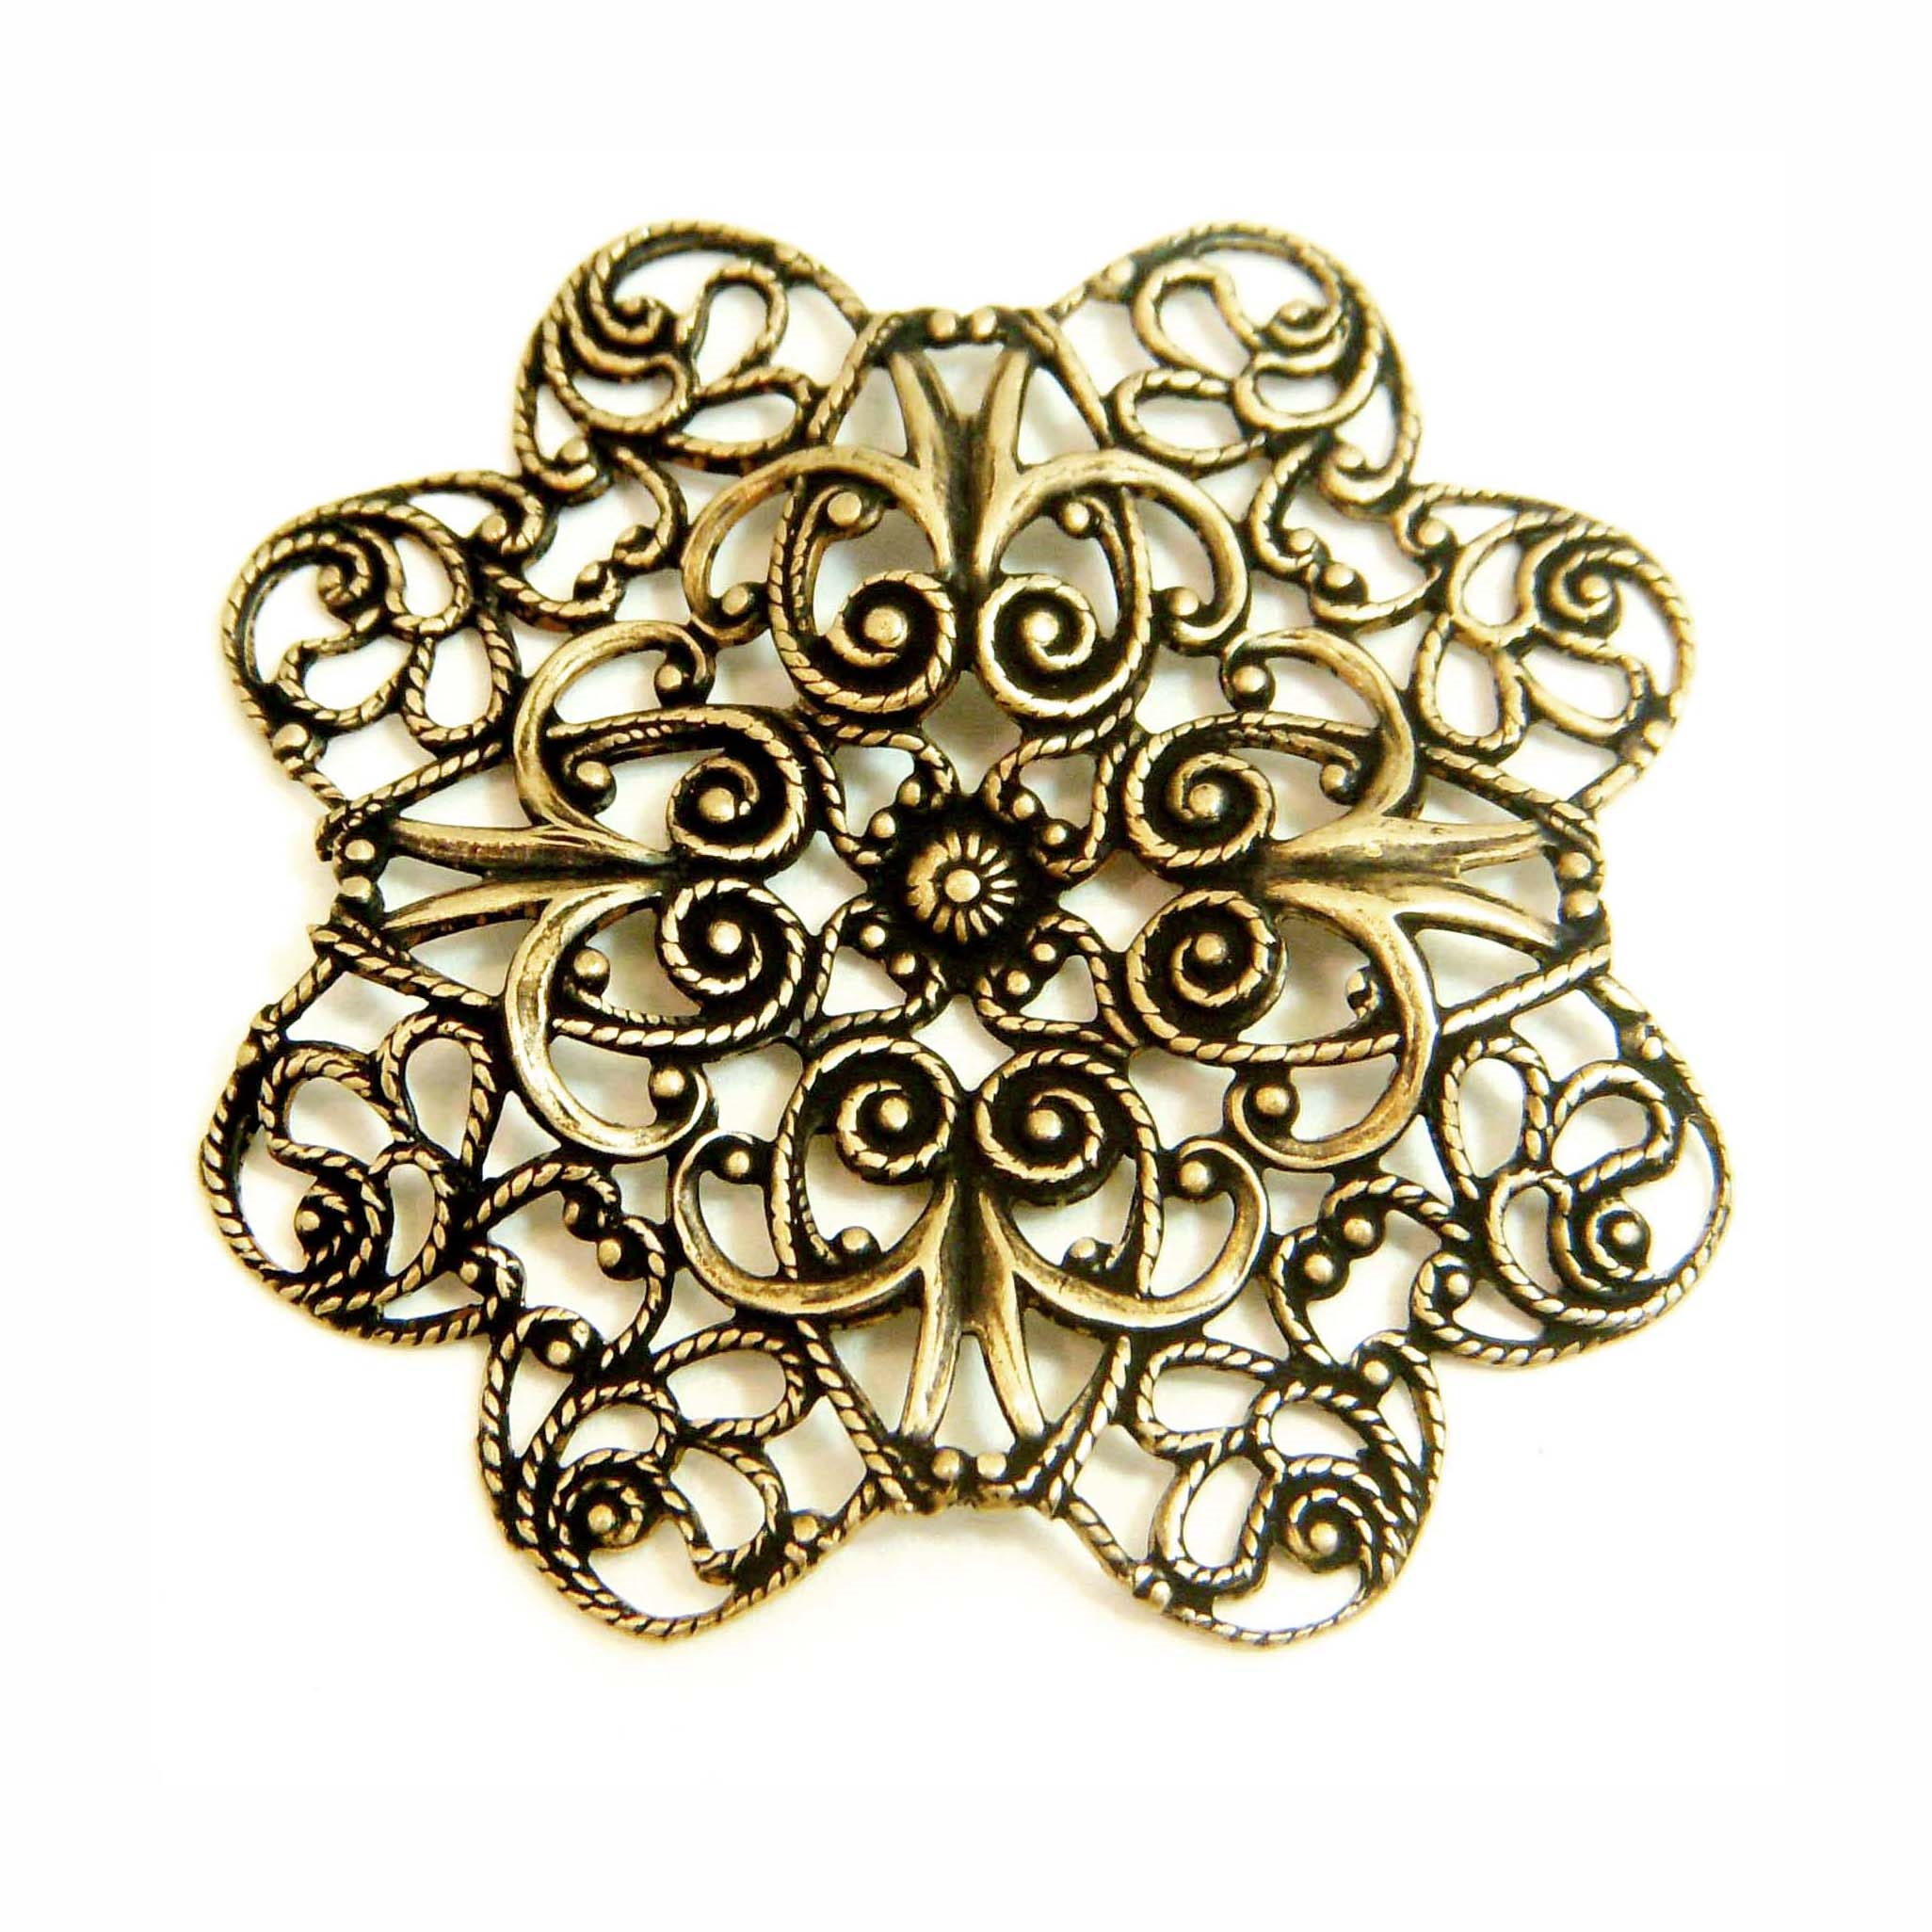 Brass Ox Filigree, Plaque, 09833, filigree, stamping, brass ox, vintage design, vintage stamping, jewelry supplies, jewelry making, bsue boutiques, vintage, centerpiece